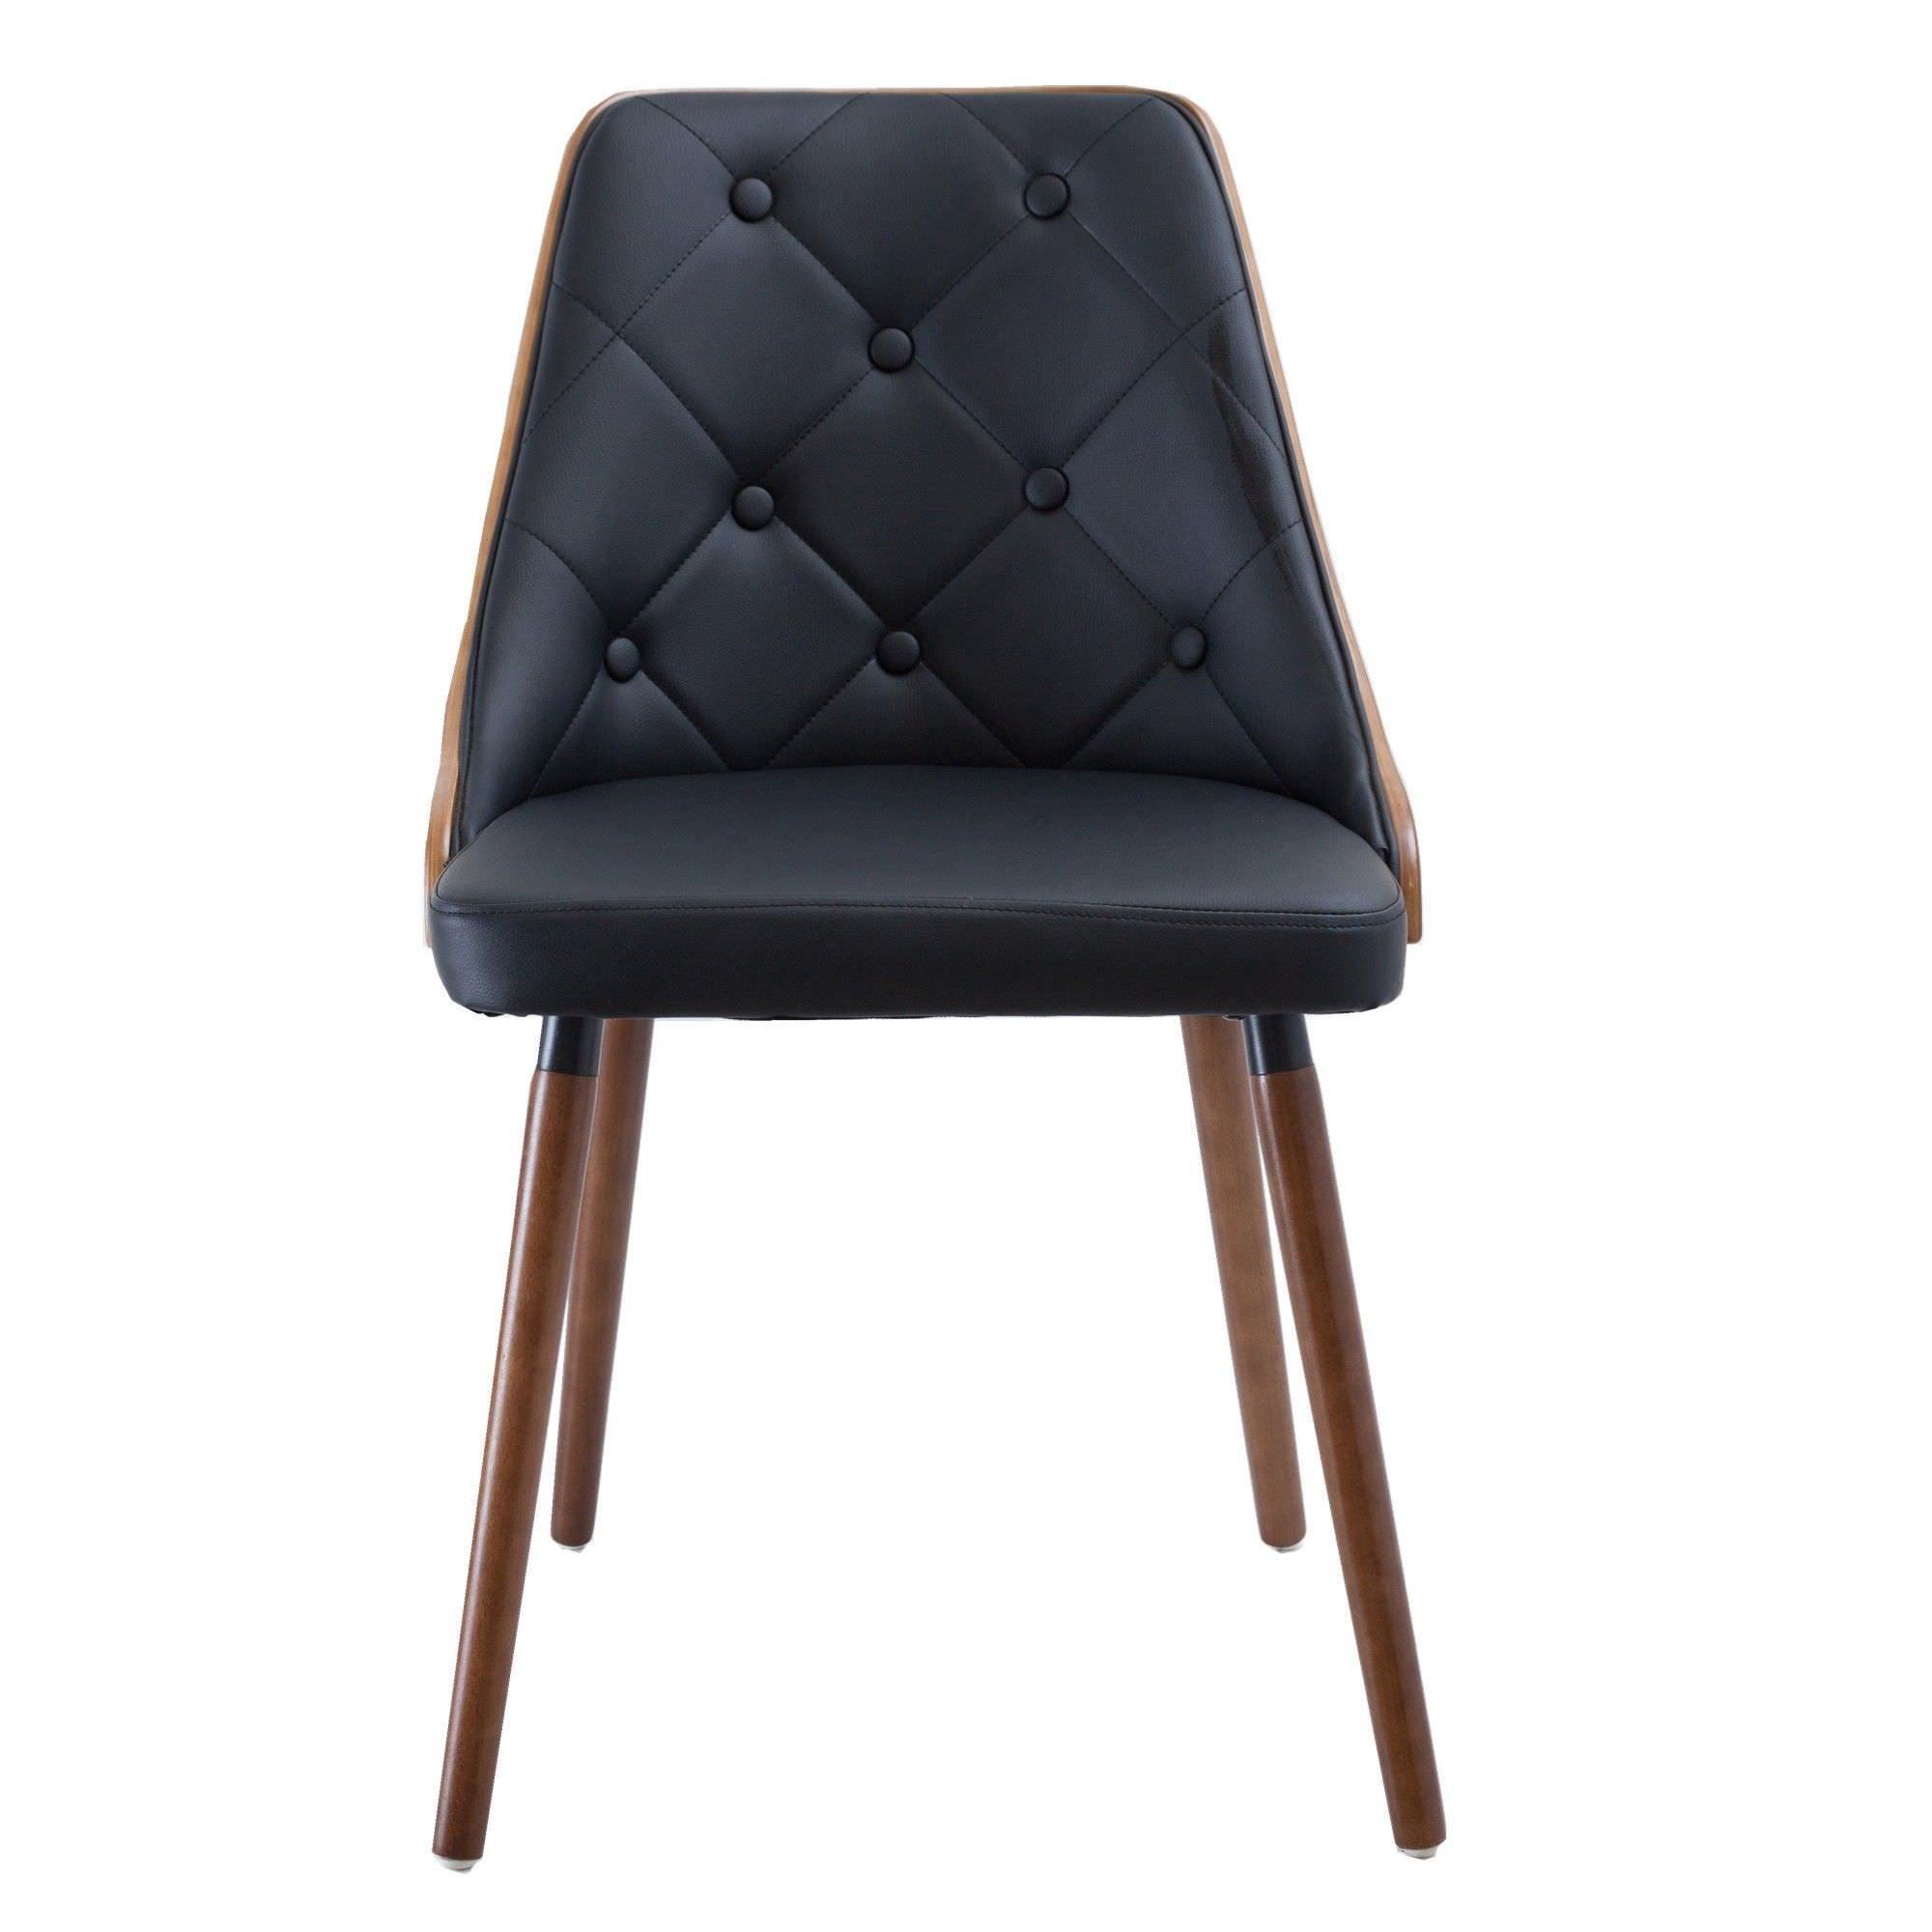 Yvonne Commercial Grade PU Leather  & Timber Dining Chair, Walnut / Black